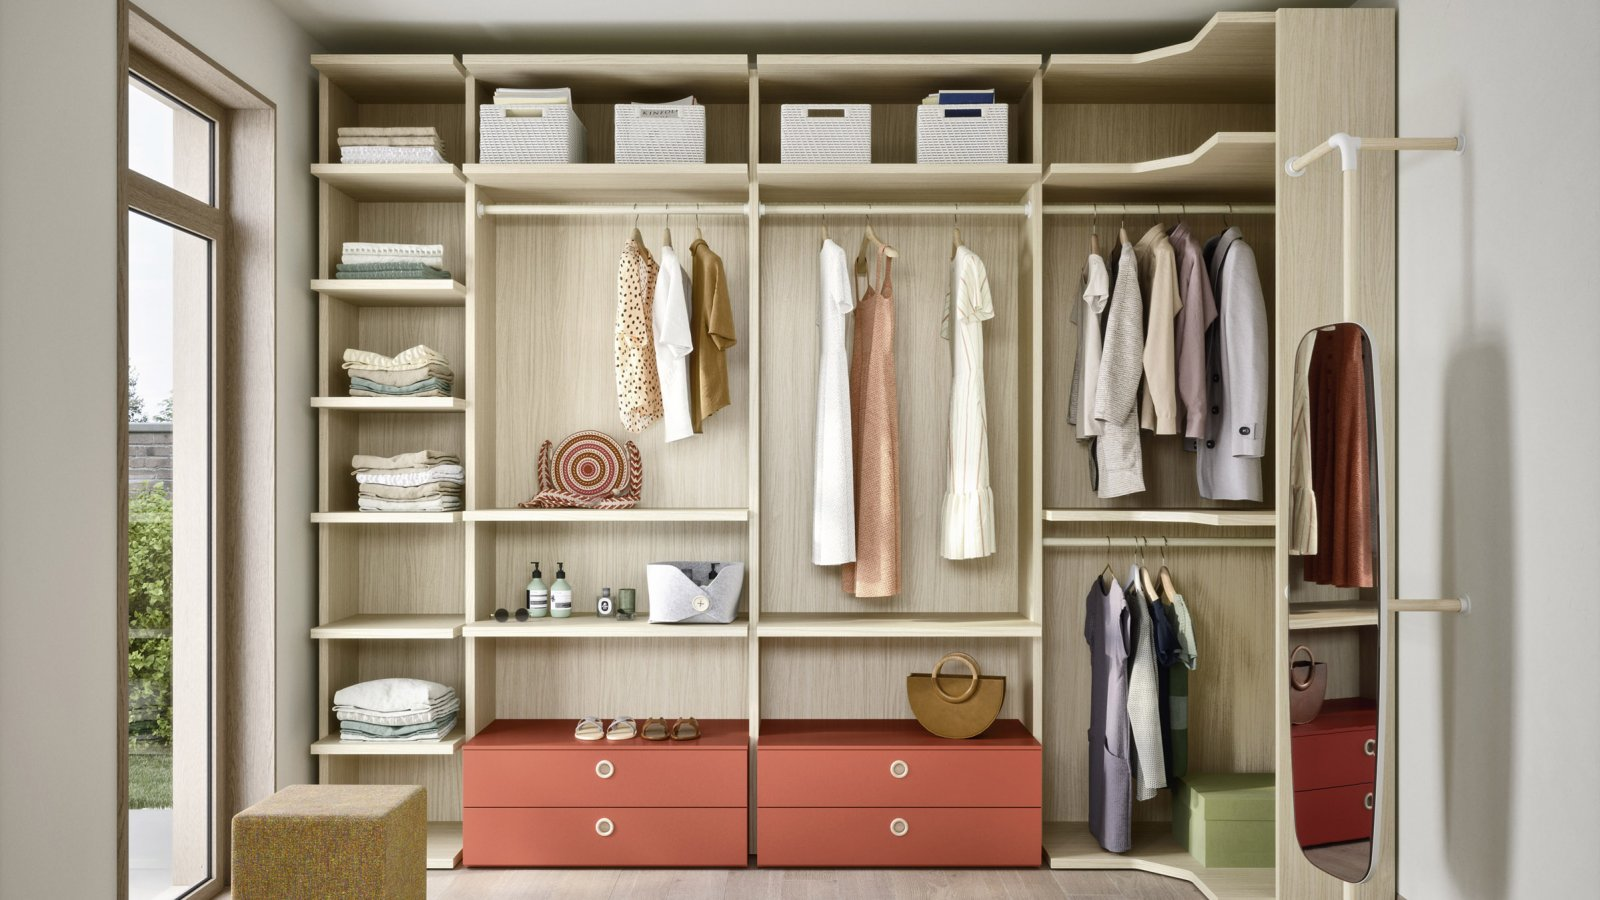 Demo walk-in closet